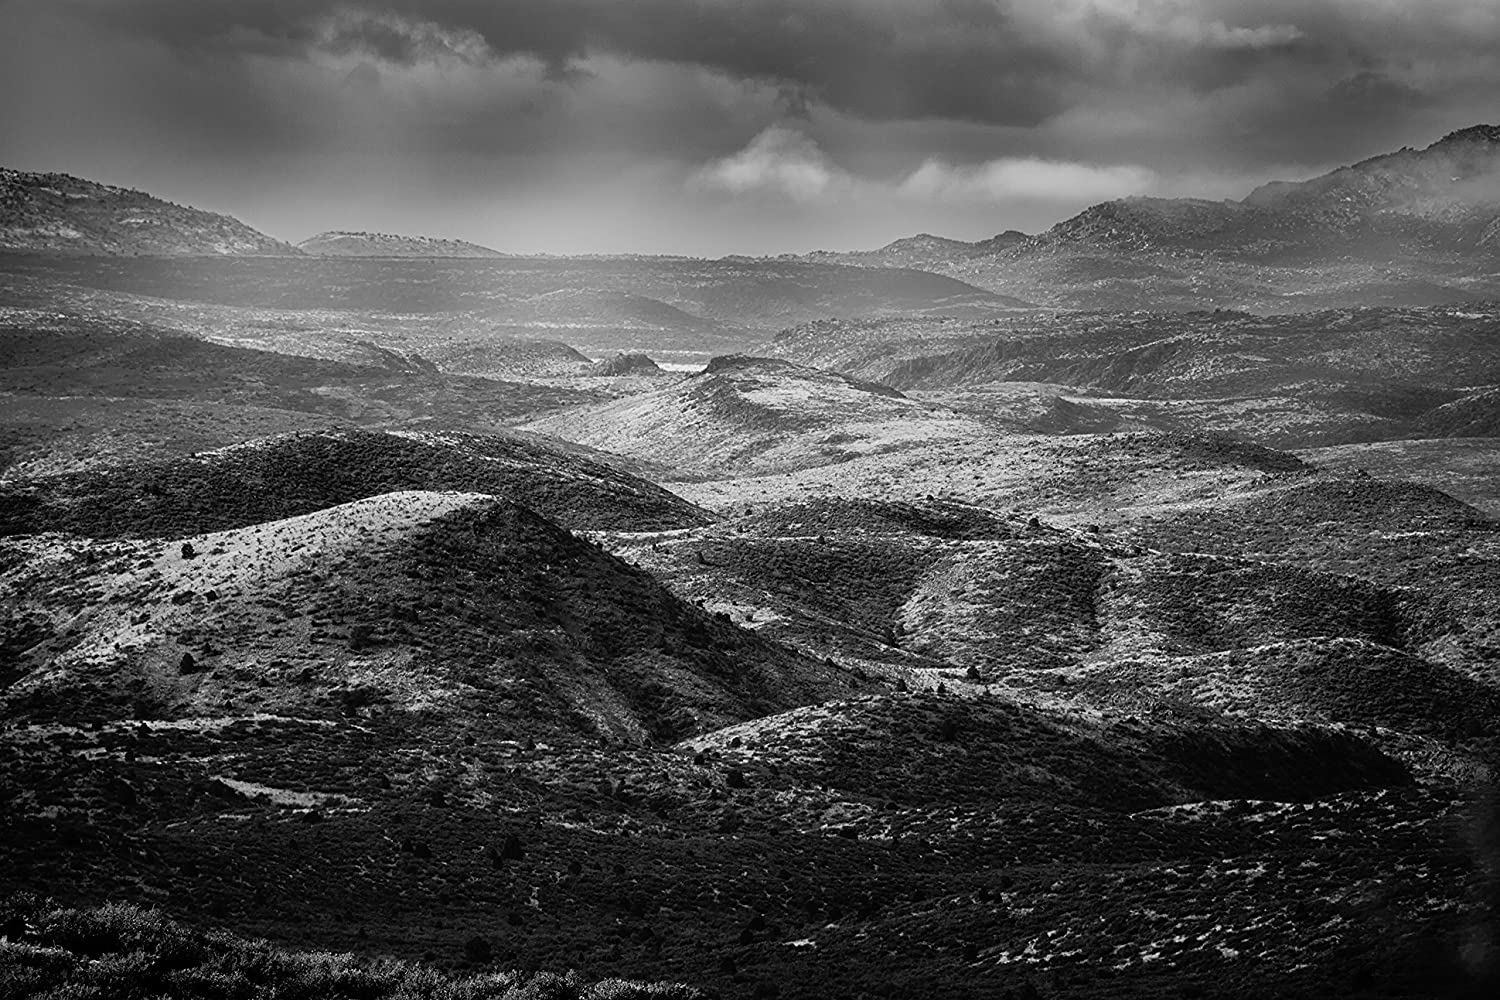 Landscape photography arizona winter landscape desert fine art photography black and white photography southwest nature photography monochrome